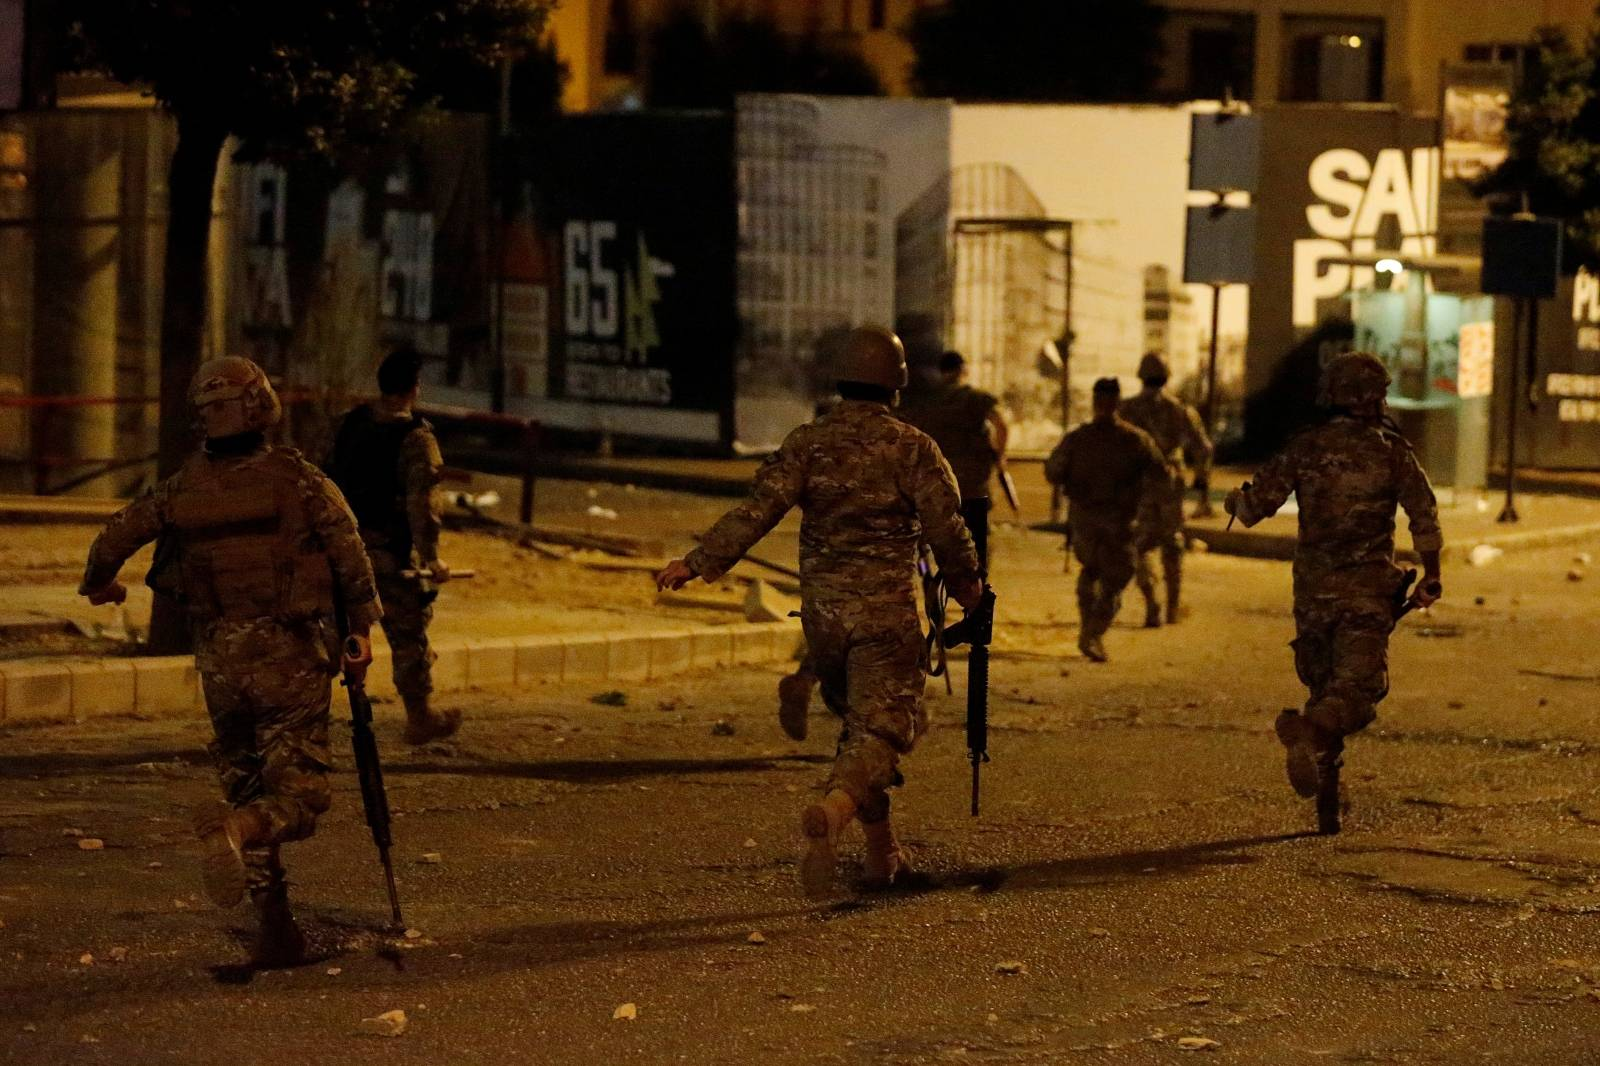 Lebanese army soldiers are deployed during clashes between anti-government demonstrators and supporters of the Lebanese Shi'ite groups Hezbollah and Amal in Beirut